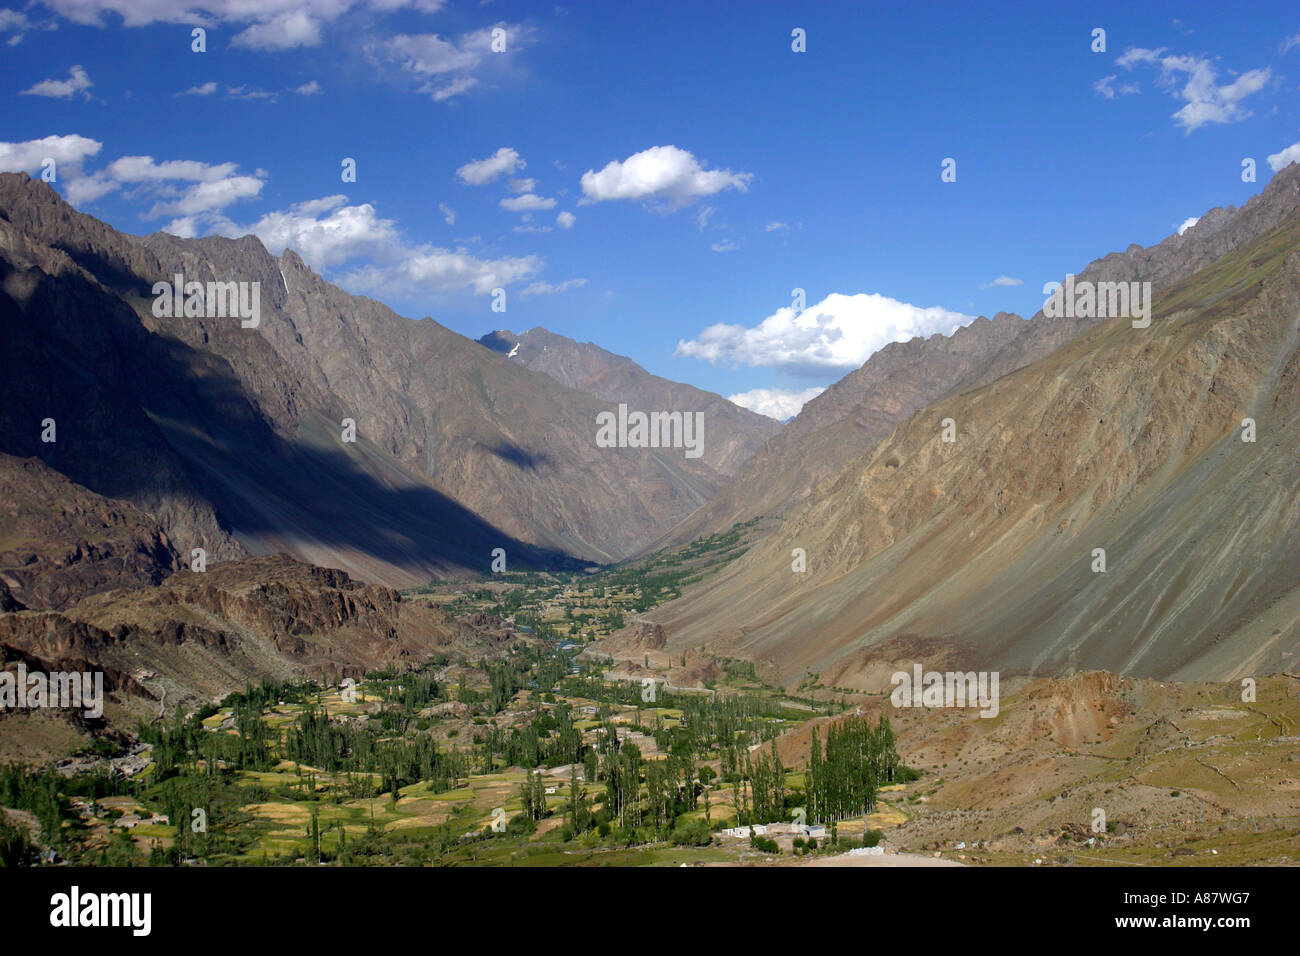 Chitral valley - Stock Image